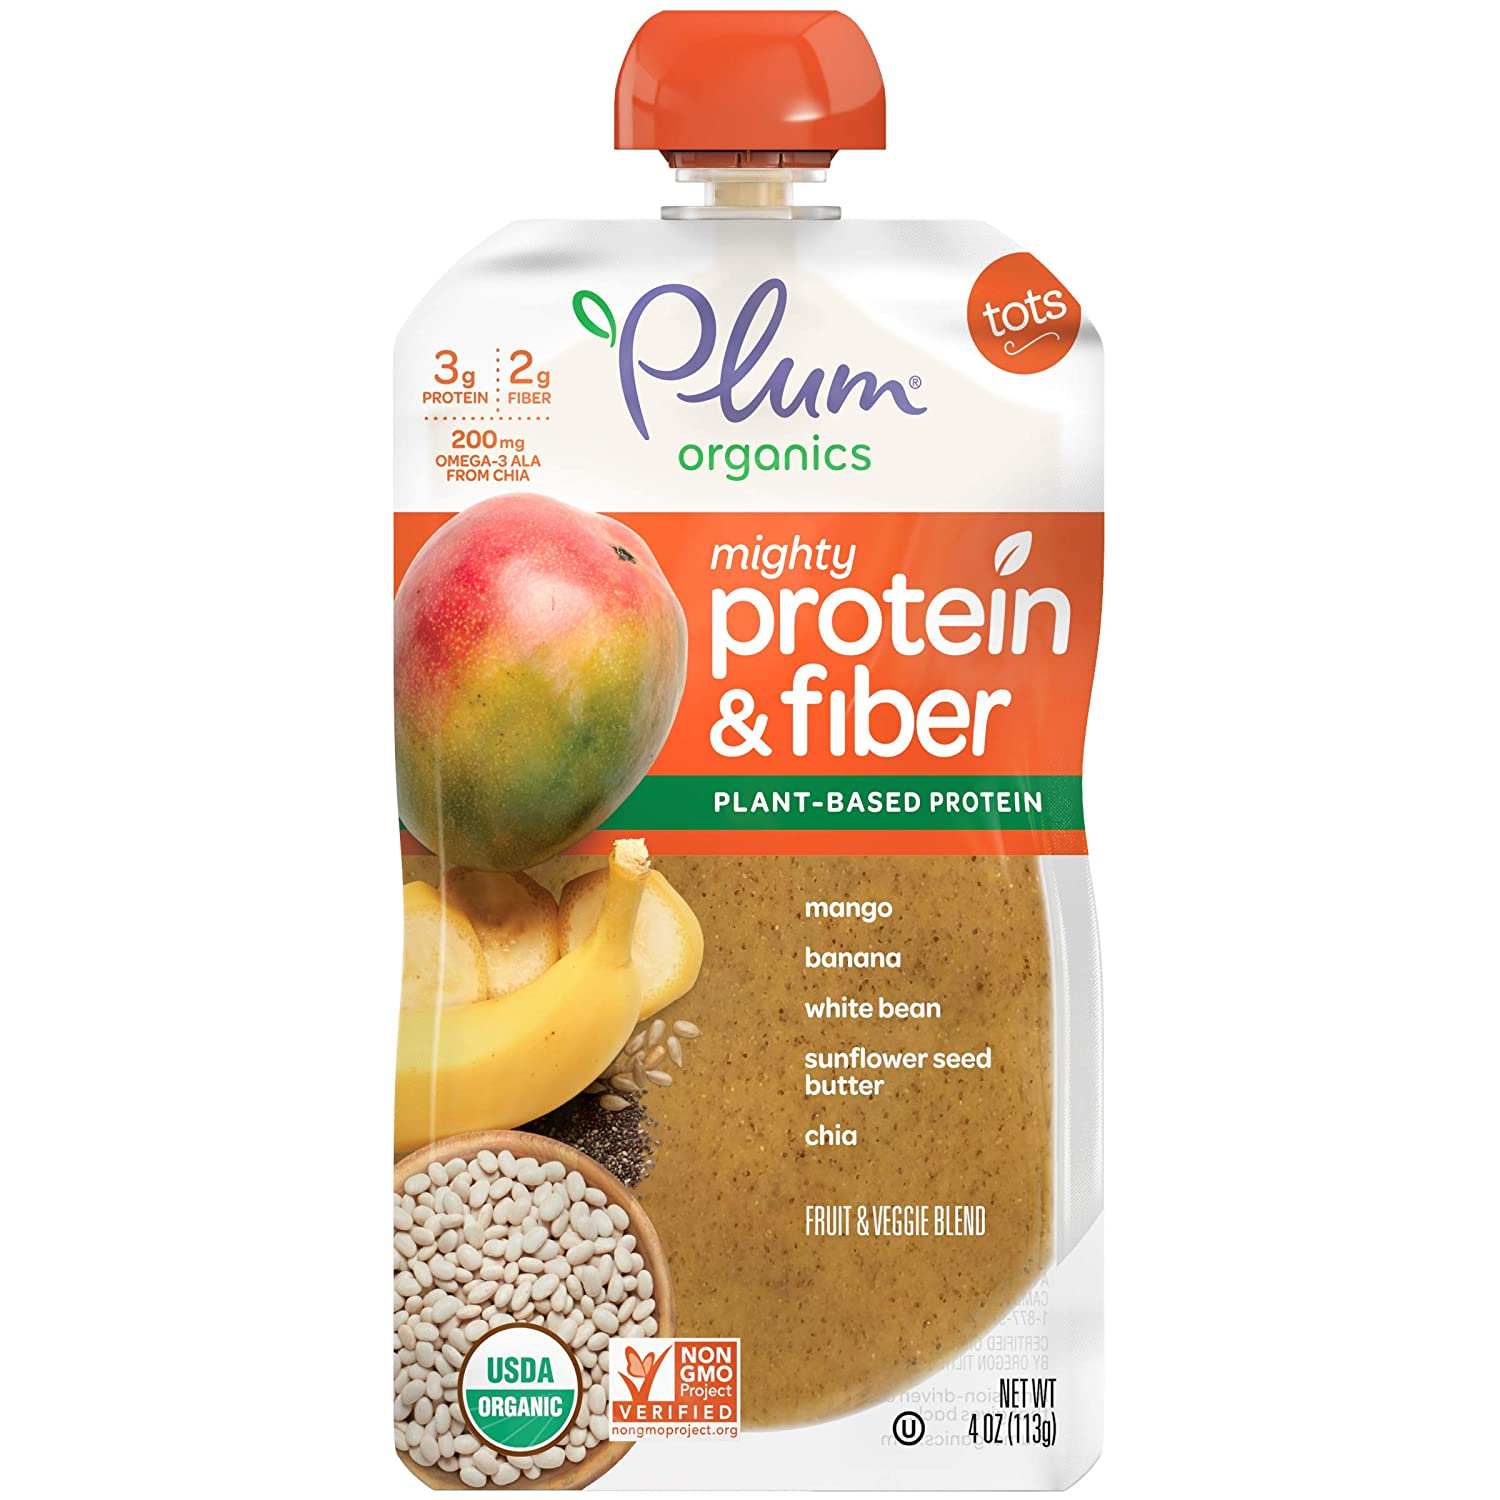 Plum Organics Mighty Protein & Fiber, Organic Toddler Food, Mango, Banana, White Bean, Sunflower Seed Butter & Chia, 4 Ounce, Pack of 12